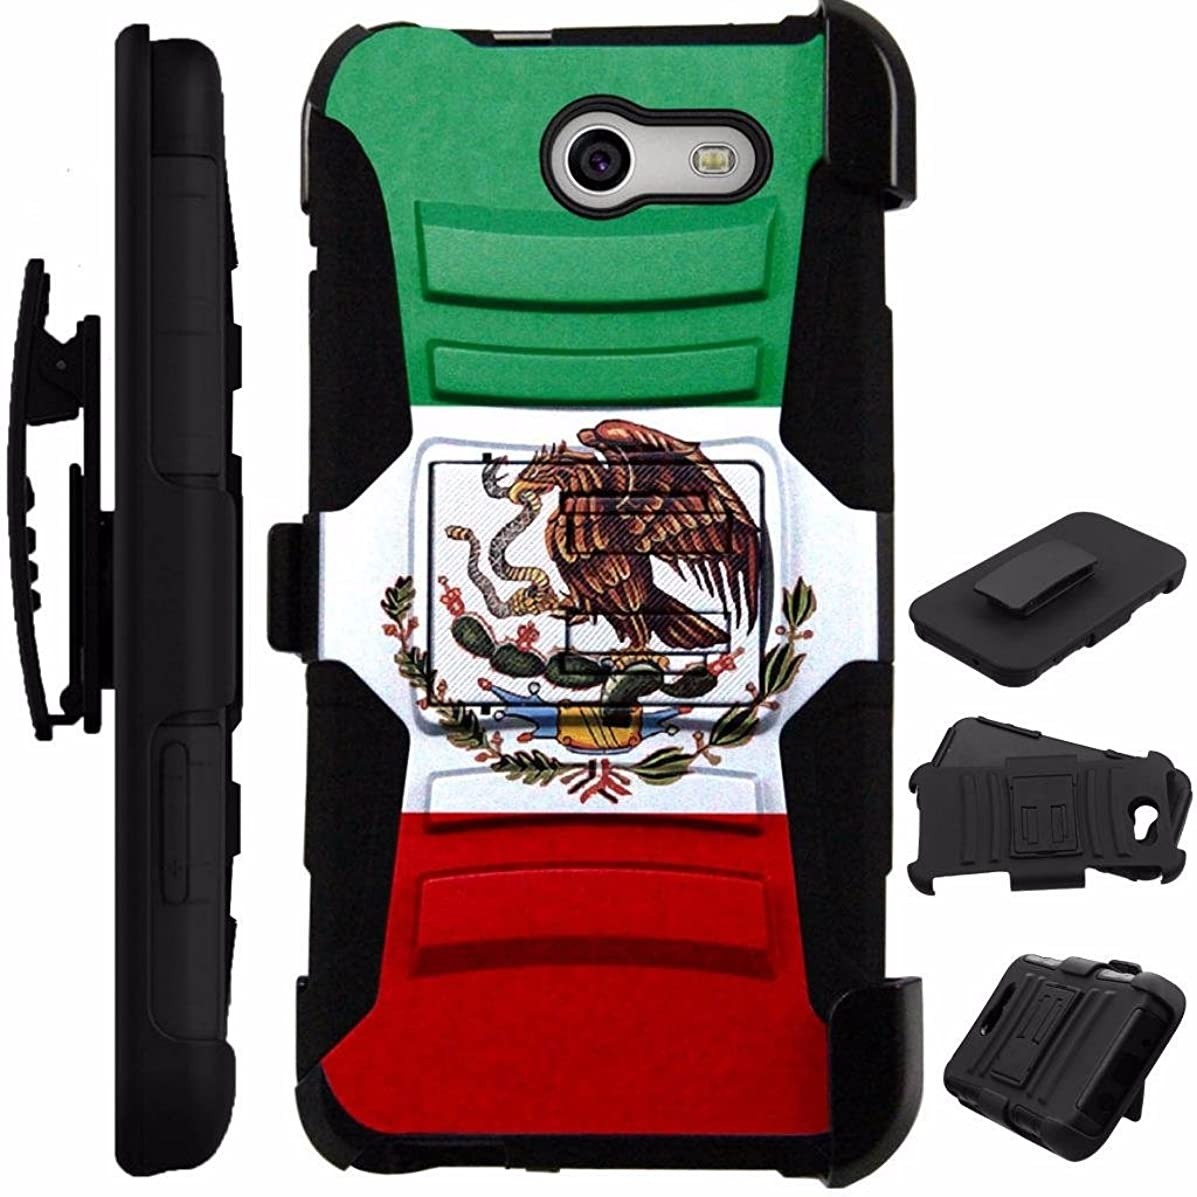 For Samsung Galaxy J7 Case (2017) / J7 Sky Pro Case / J727 Armor Hybrid Case Silicone Cover Kick Stand LuxGuard Holster + Tempered Glass Screen Protector (Flag of Mexican Eagle)